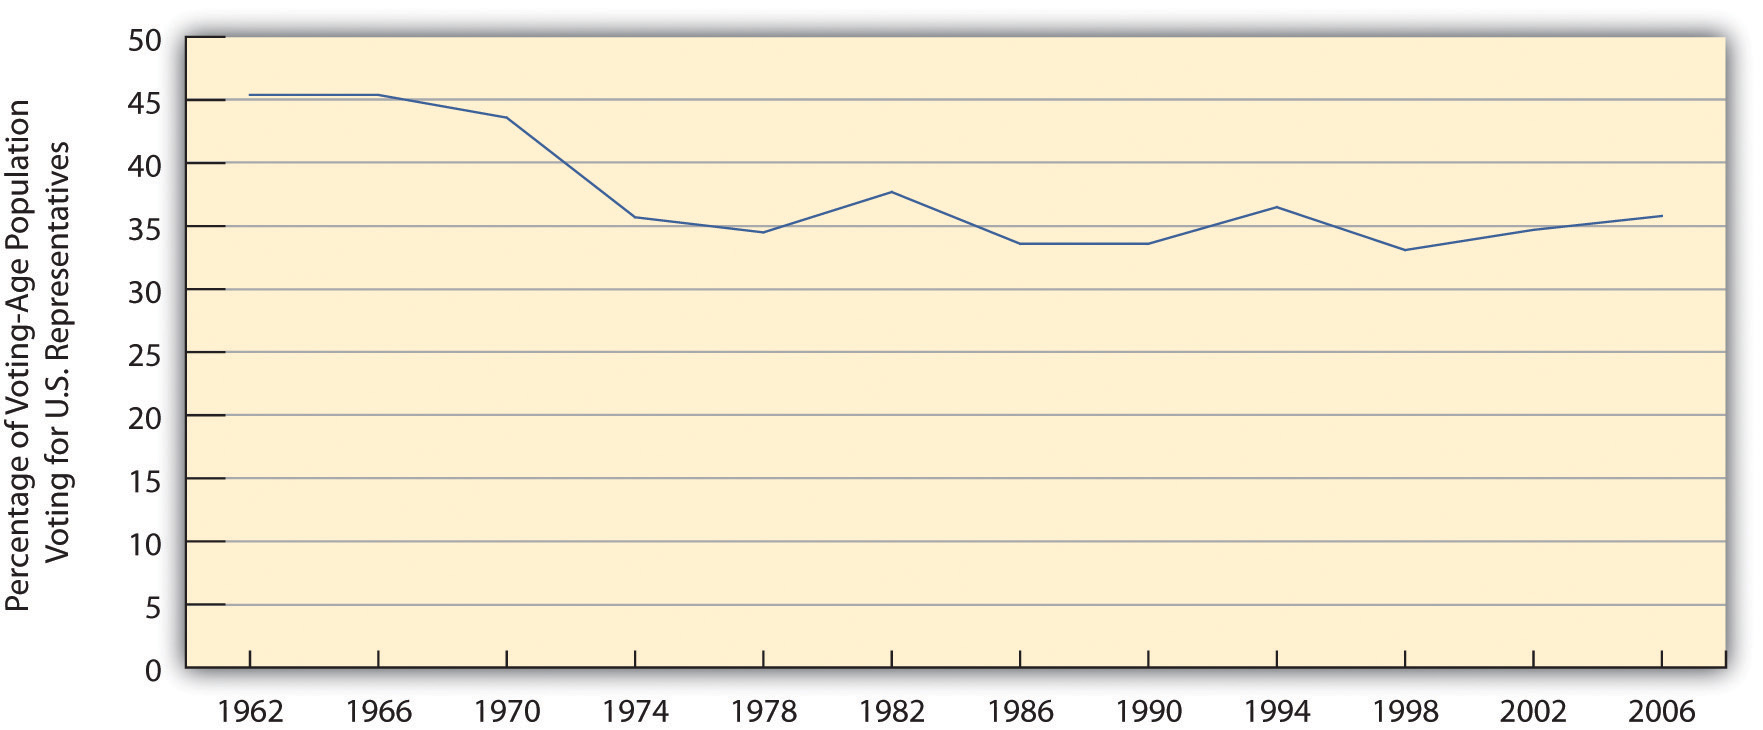 Trends in Voter Turnout in Nonpresidential Election Years